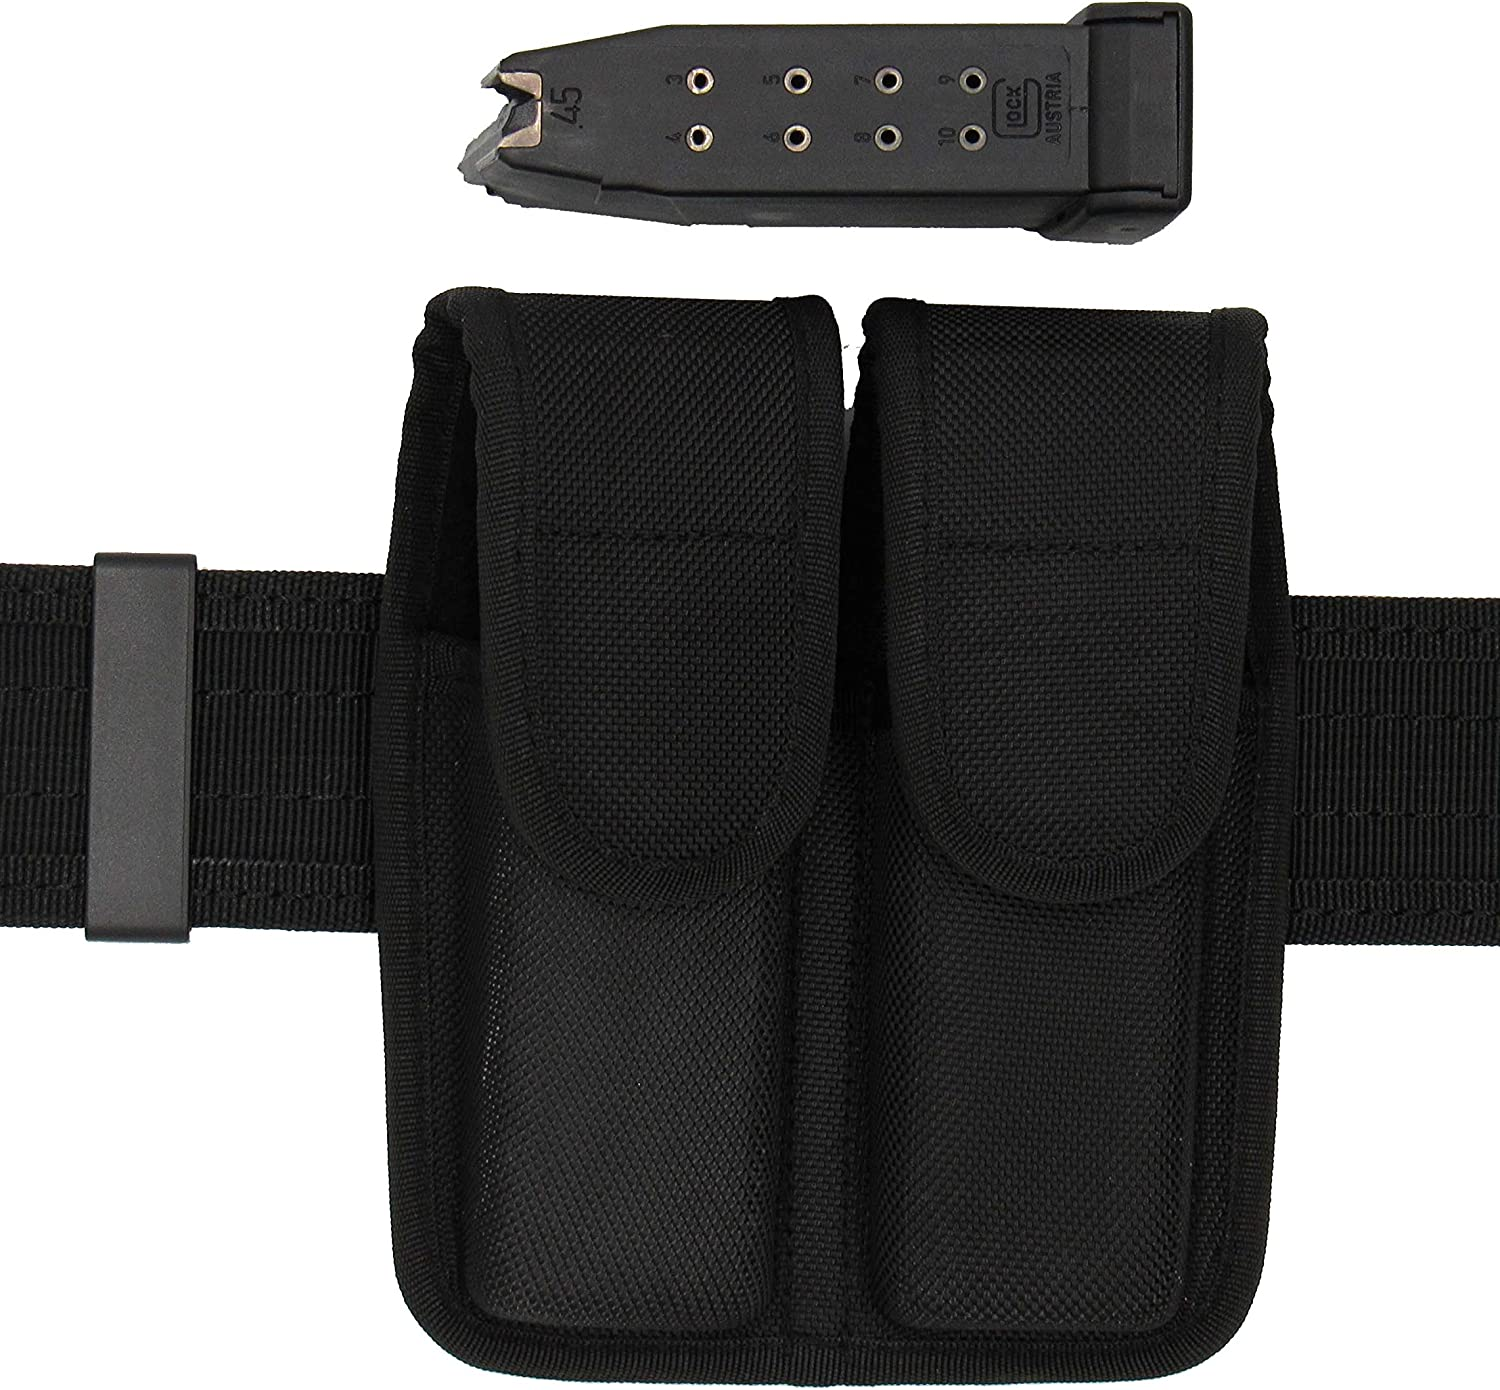 King Holster Double Magazine Pouch Fits Glock .40 Cal Mags Models 22 23 24 27 35